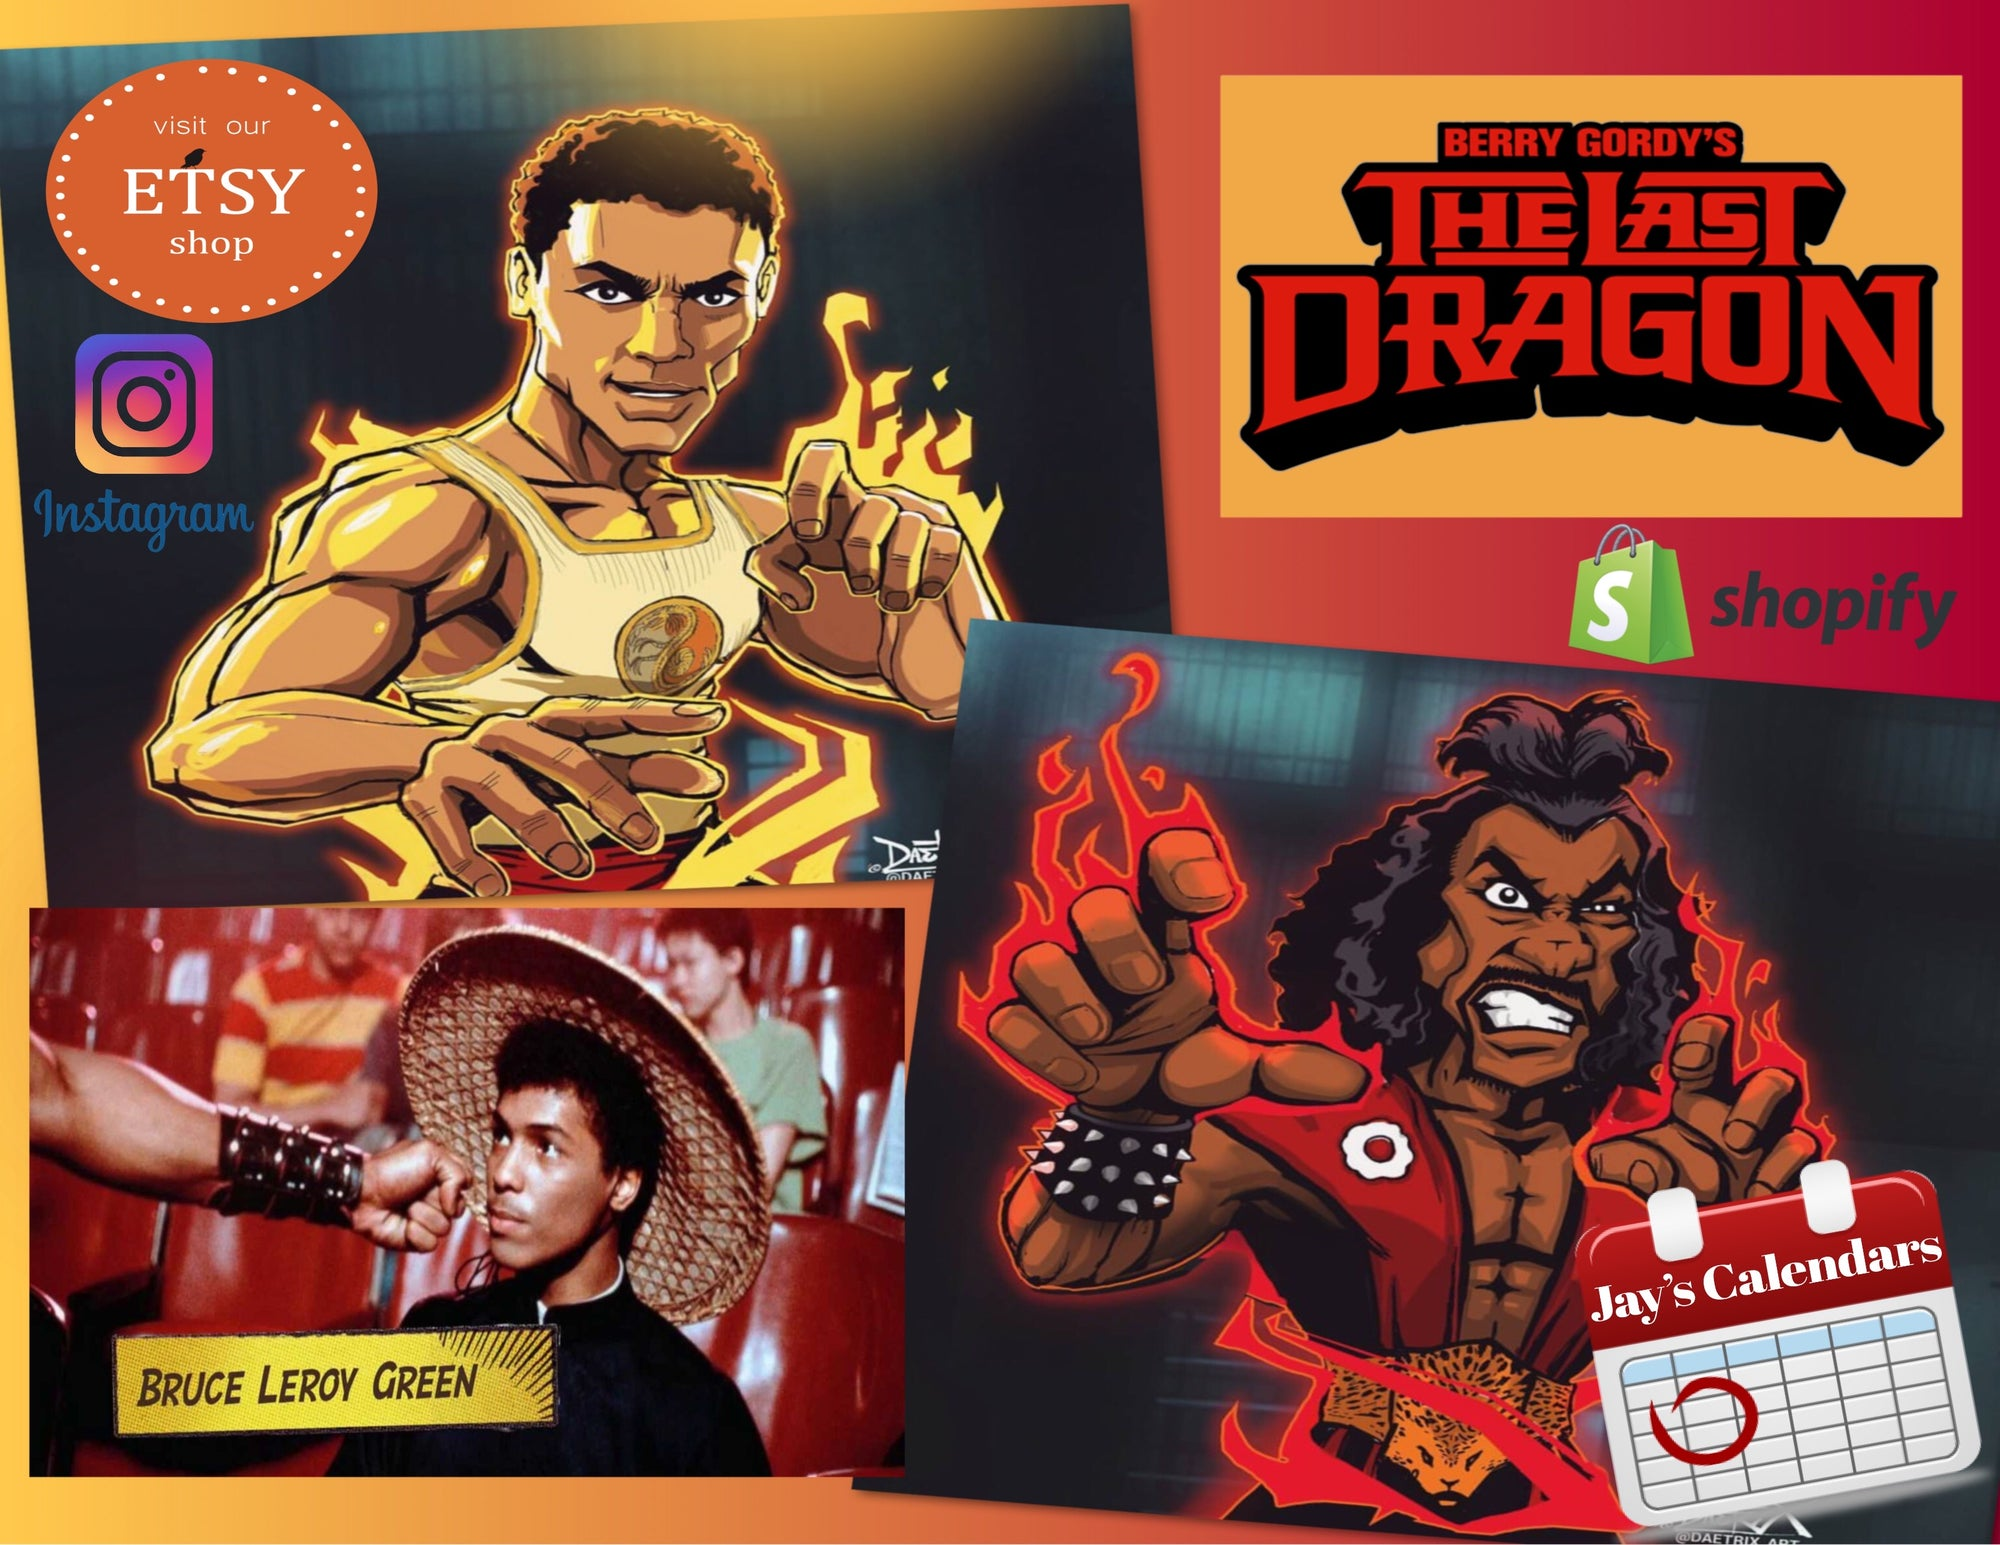 The Last Dragon 2021 Calendar